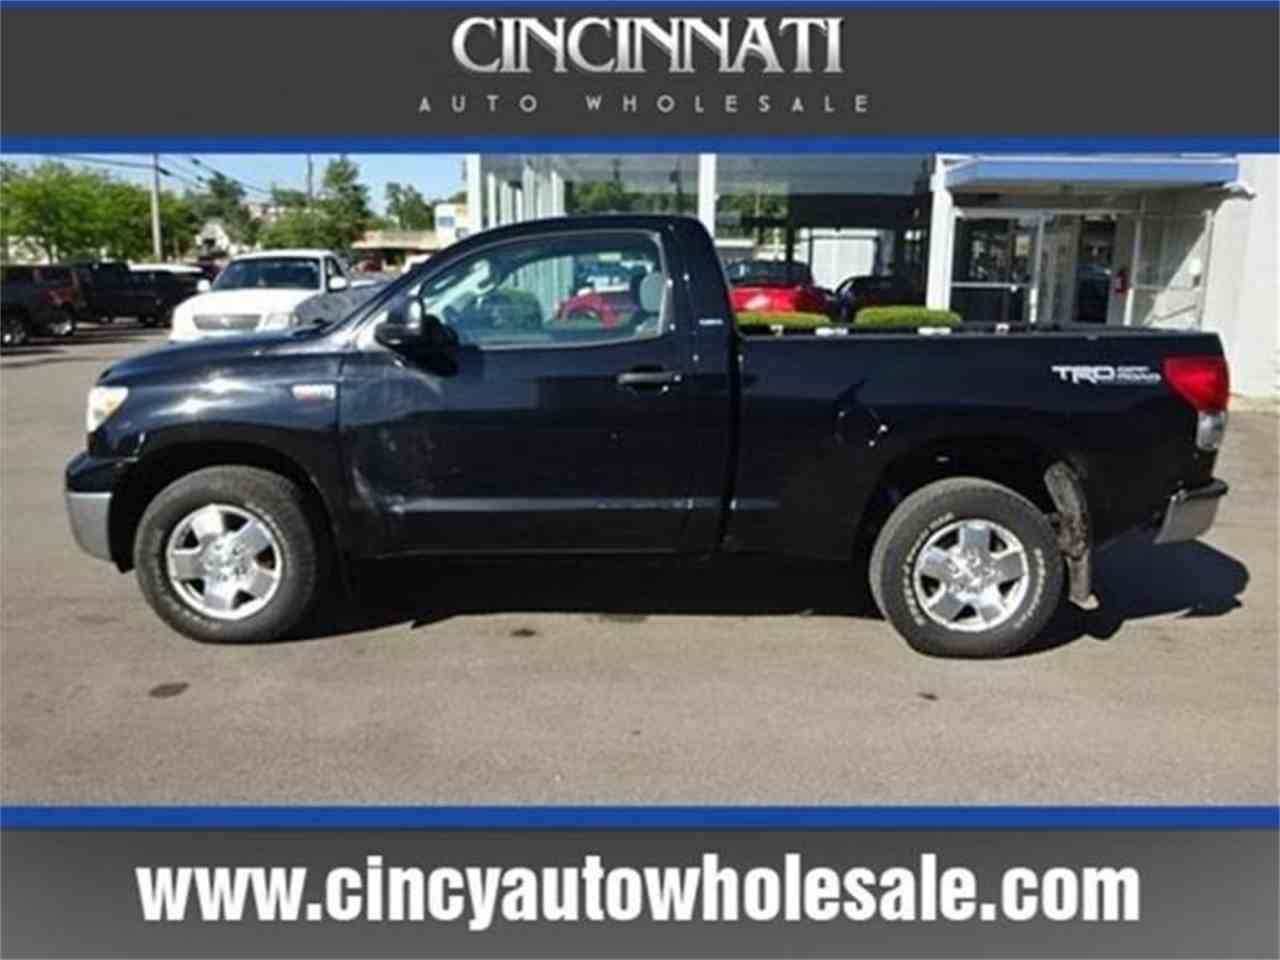 Large Picture of '08 Tundra located in Ohio - $11,000.00 - MBKP